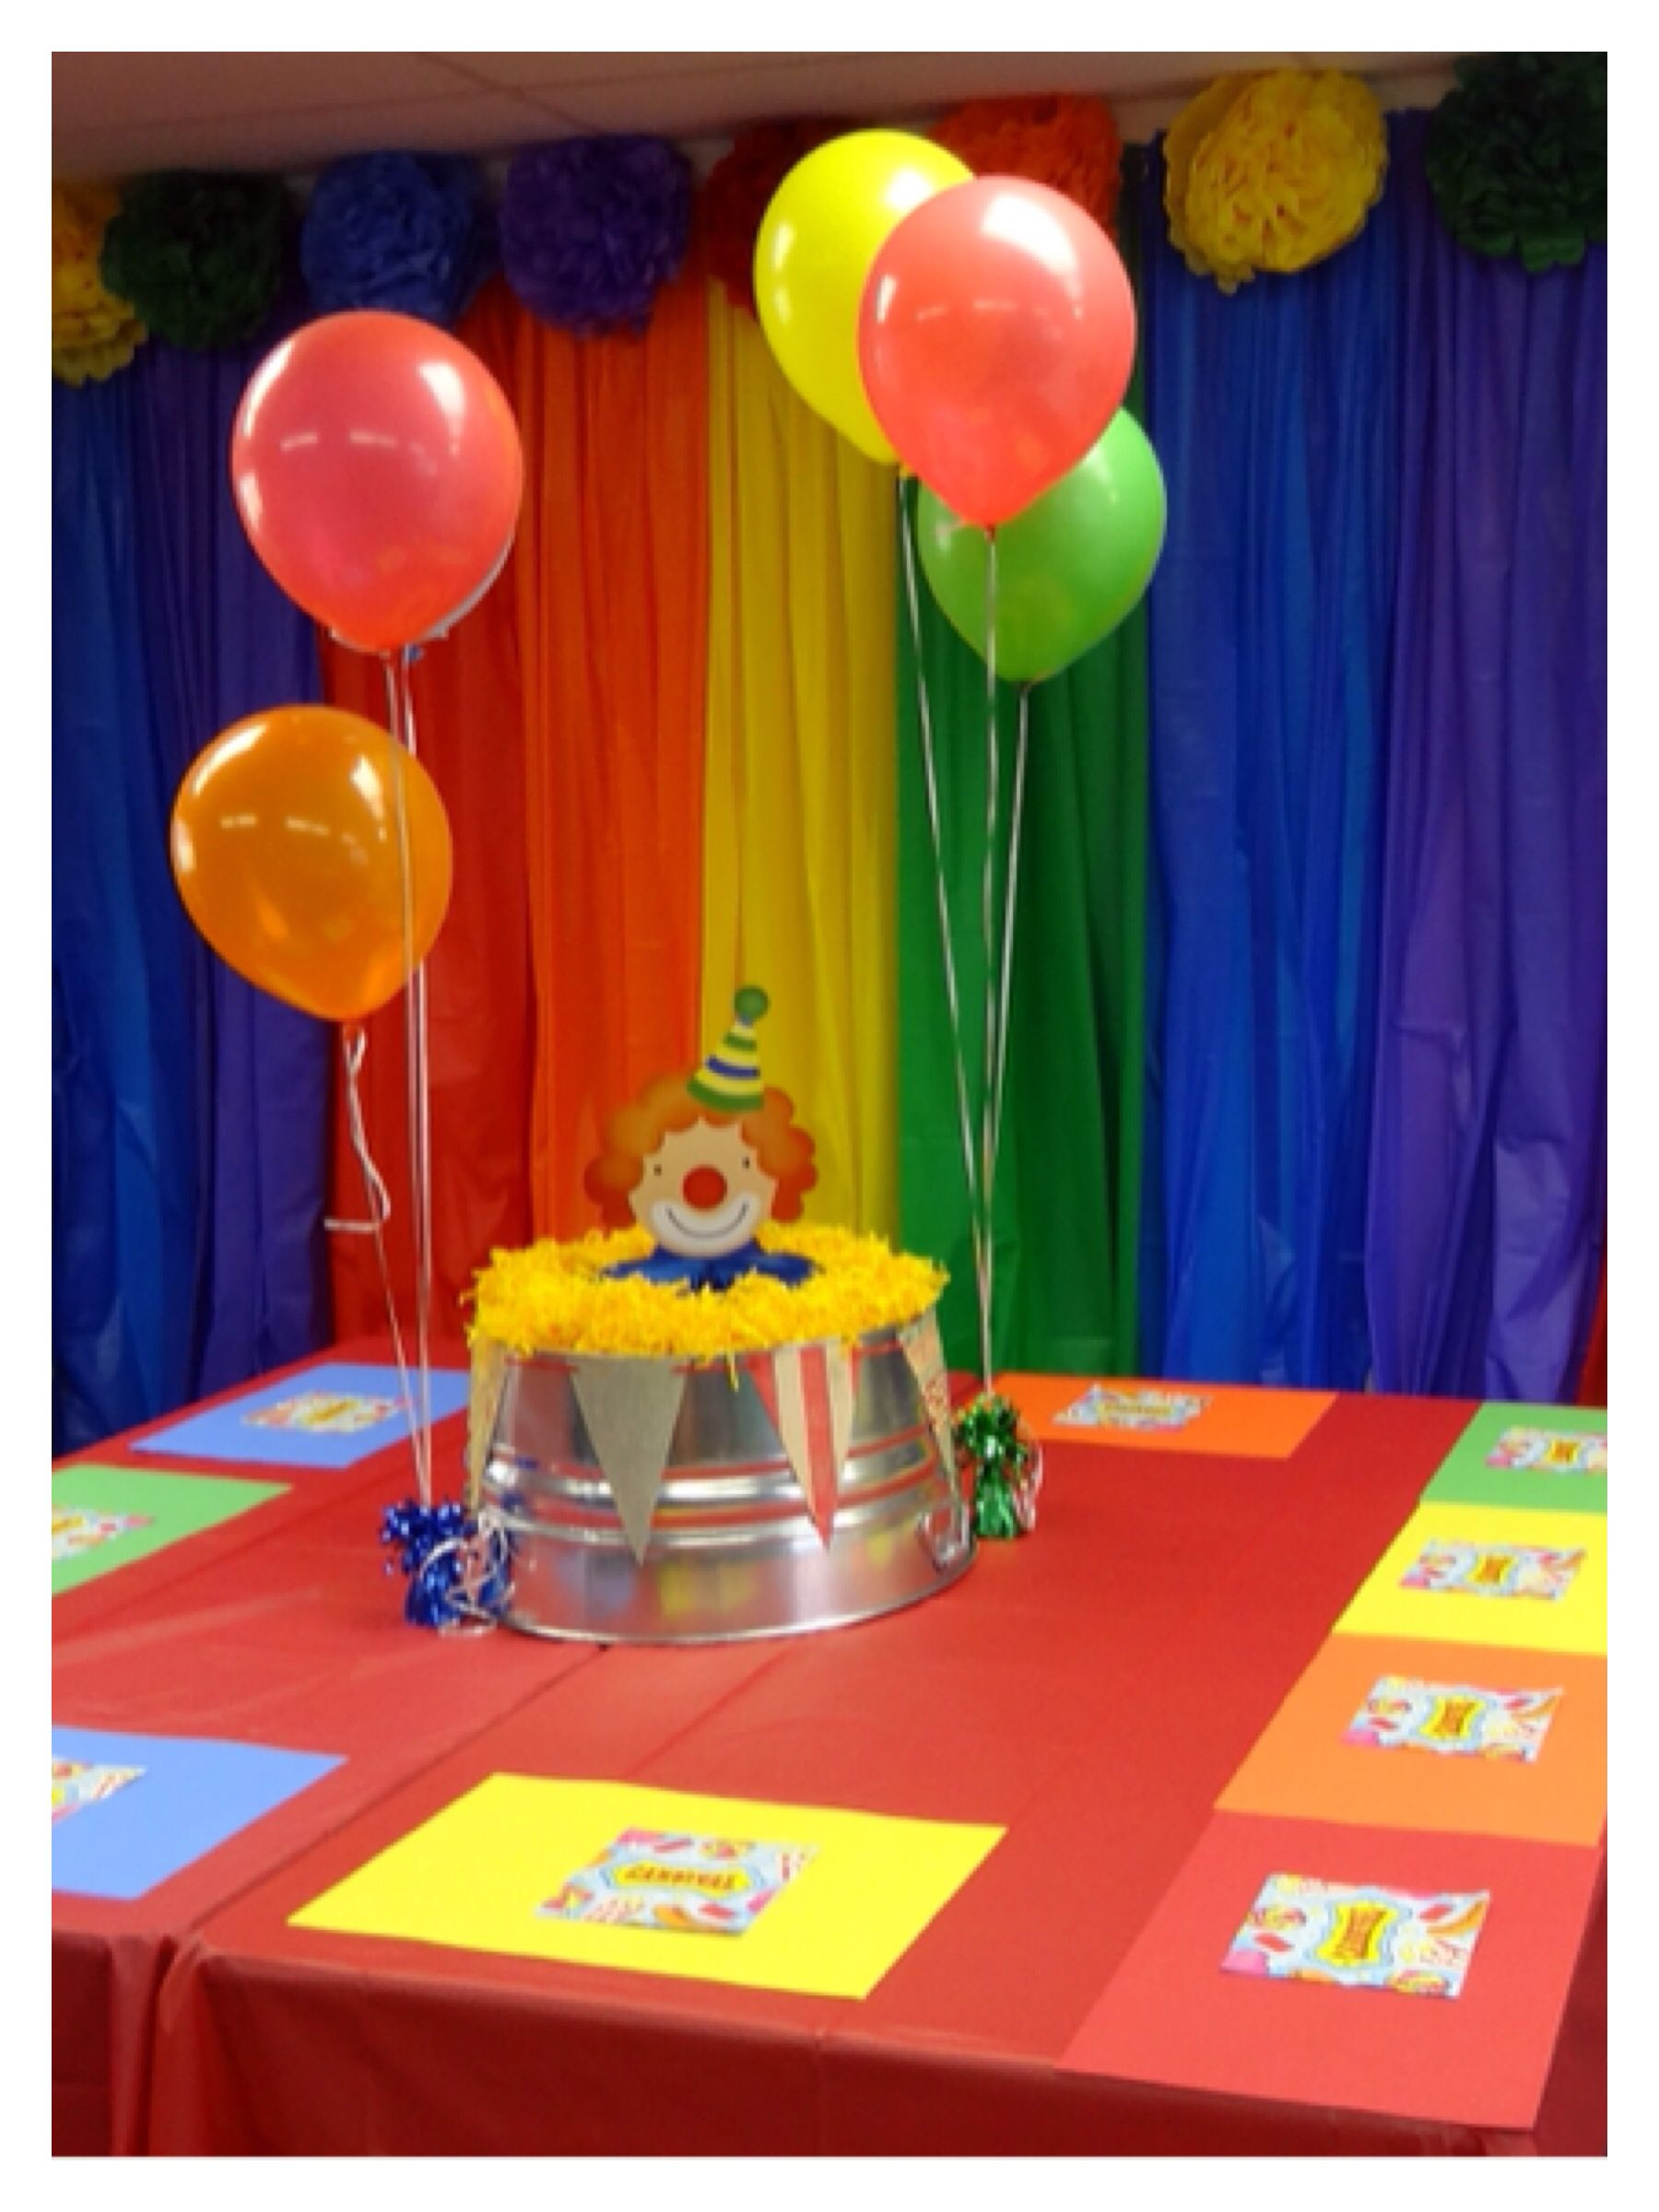 Carnival or circus theme backdrop table decorations for school party school daze - Carnival theme decoration ideas ...